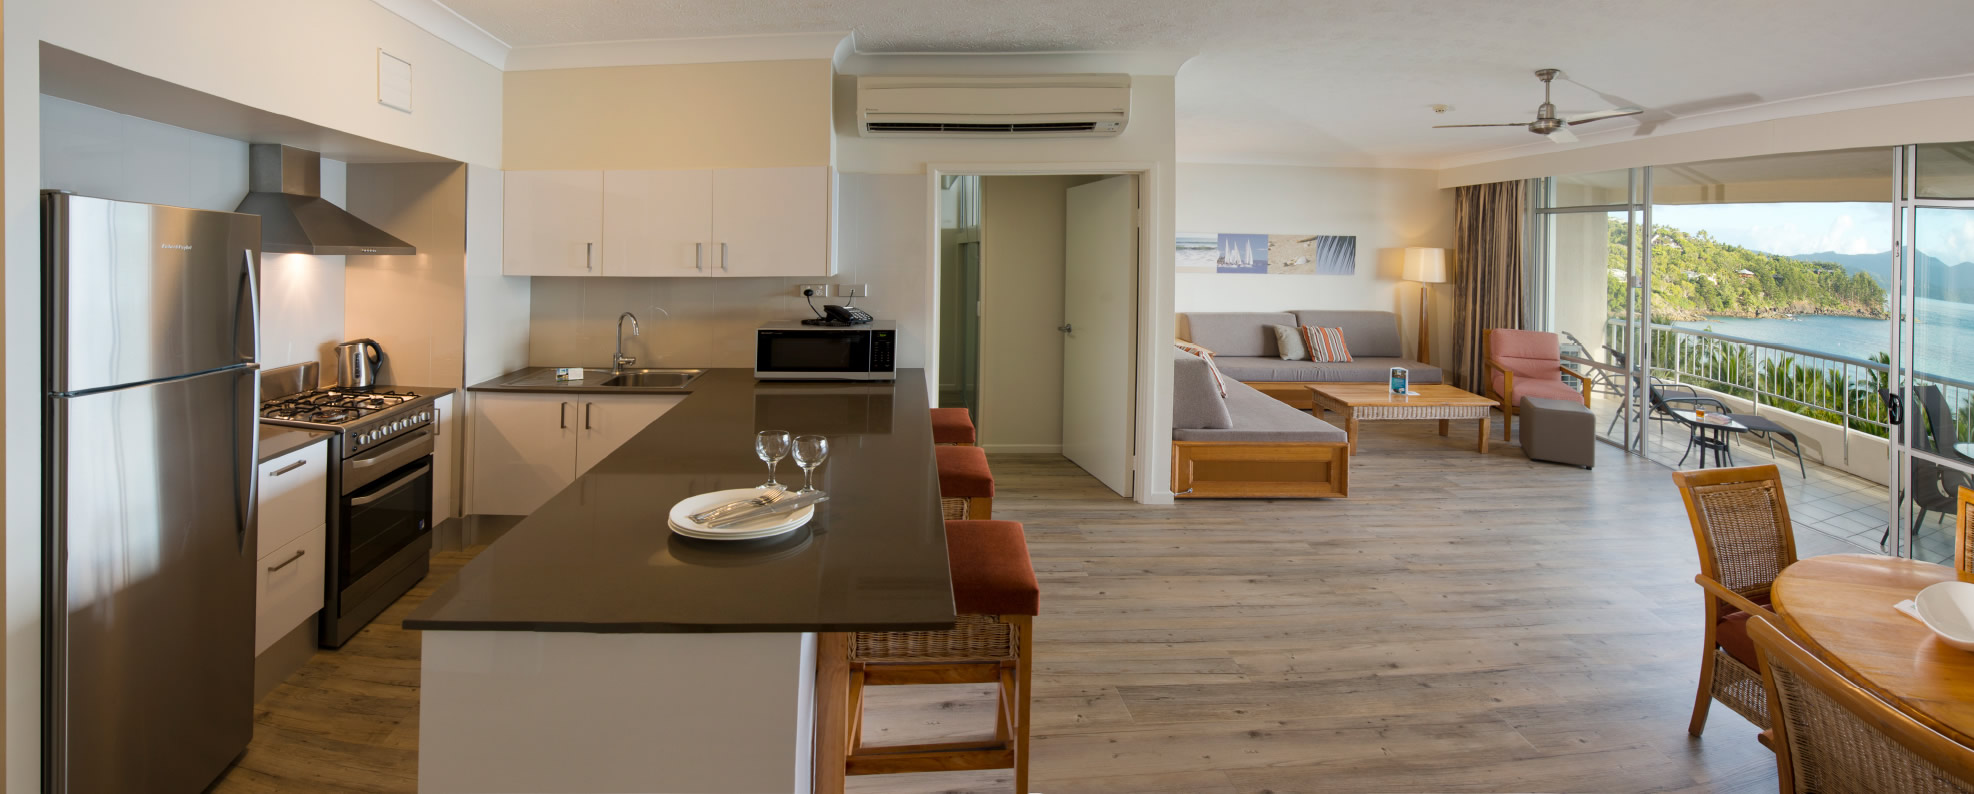 Special Offers - Great Value Accommodation - Whitsunday